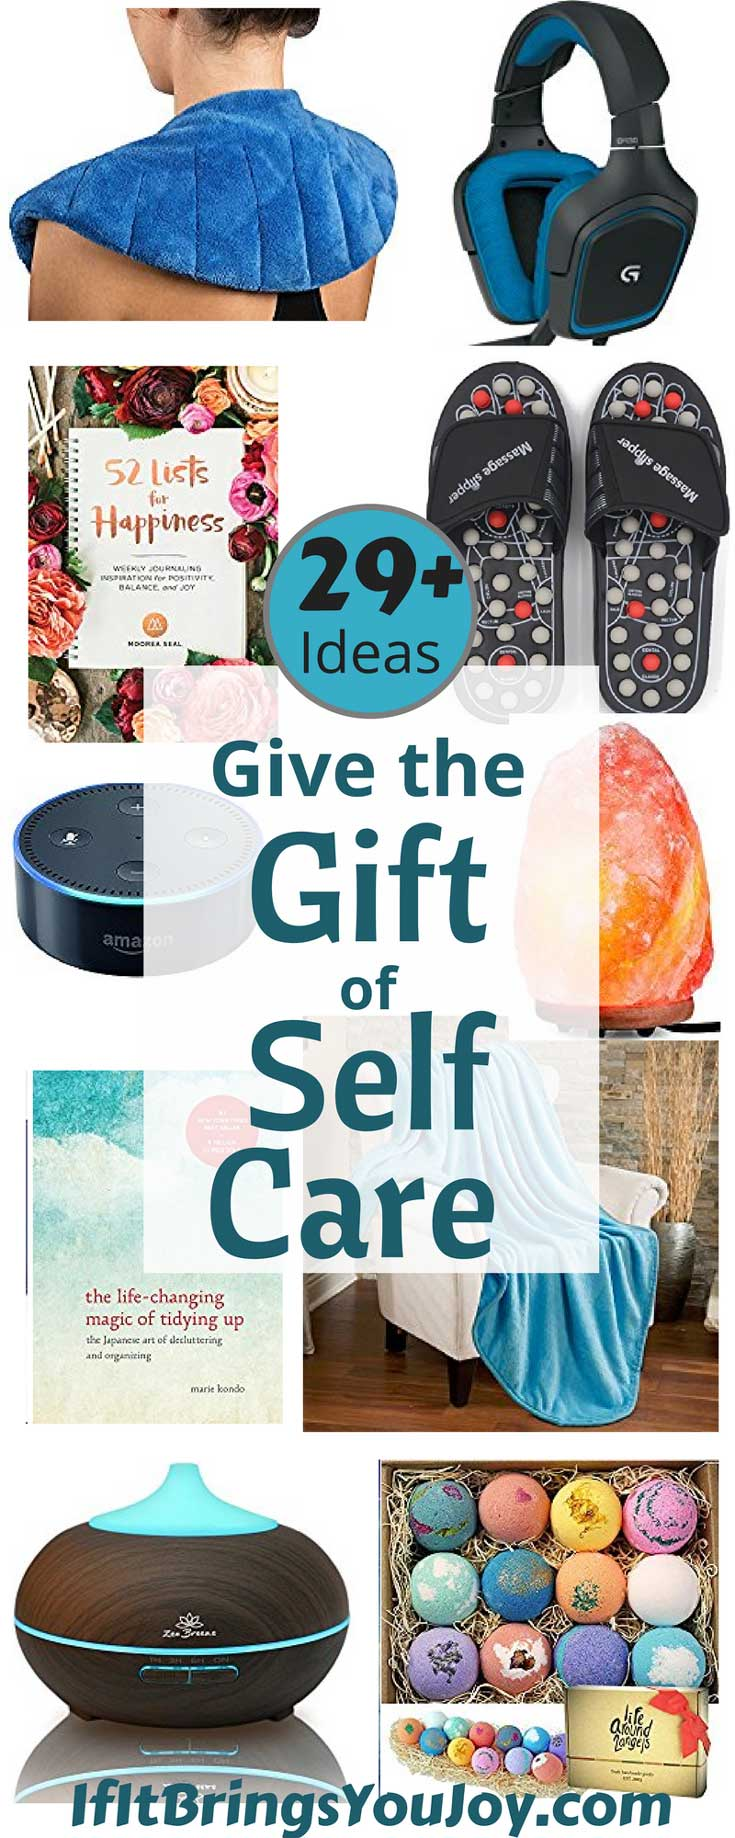 Give the gift of self-care, or treat yourself! The best budget-friendly gift ideas to help make self-care a priority. All of these gift ideas are among Amazon's most popular products ordered as gifts. Perfect for #MothersDay or any gift-giving occasion. #giftguide